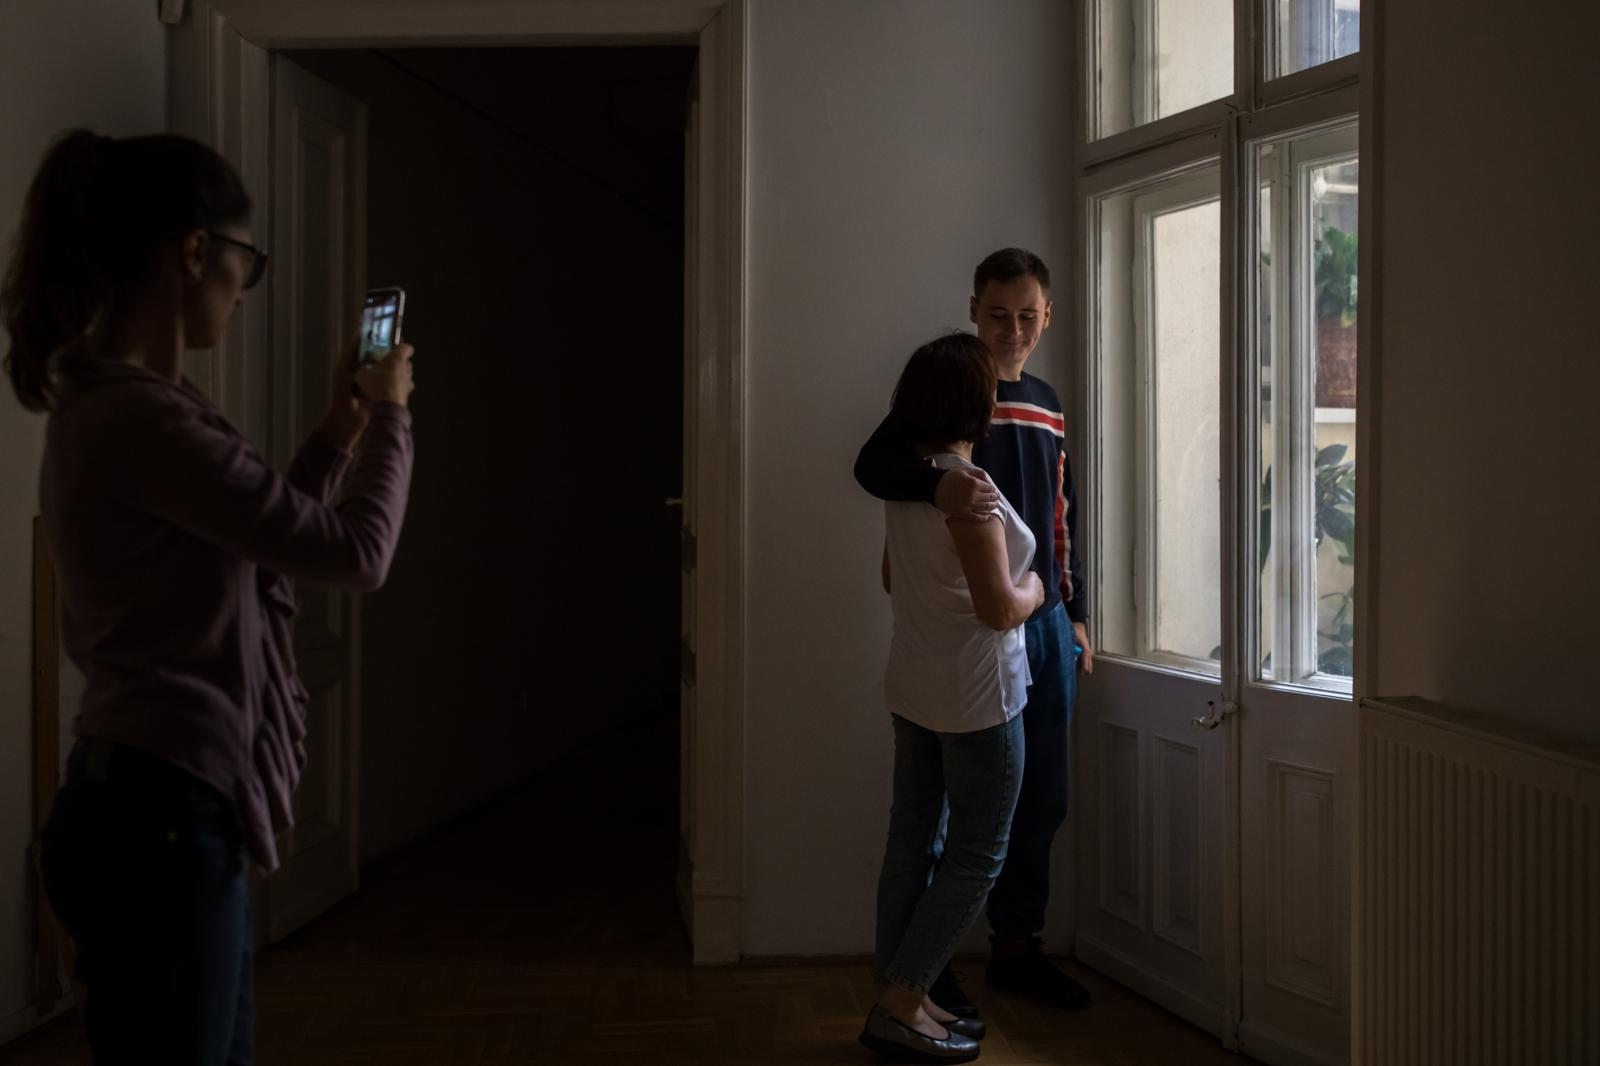 Photography image - Loading Belarus-profile_Anna_Liminowicz_for_The_New_York_Times-19.jpg